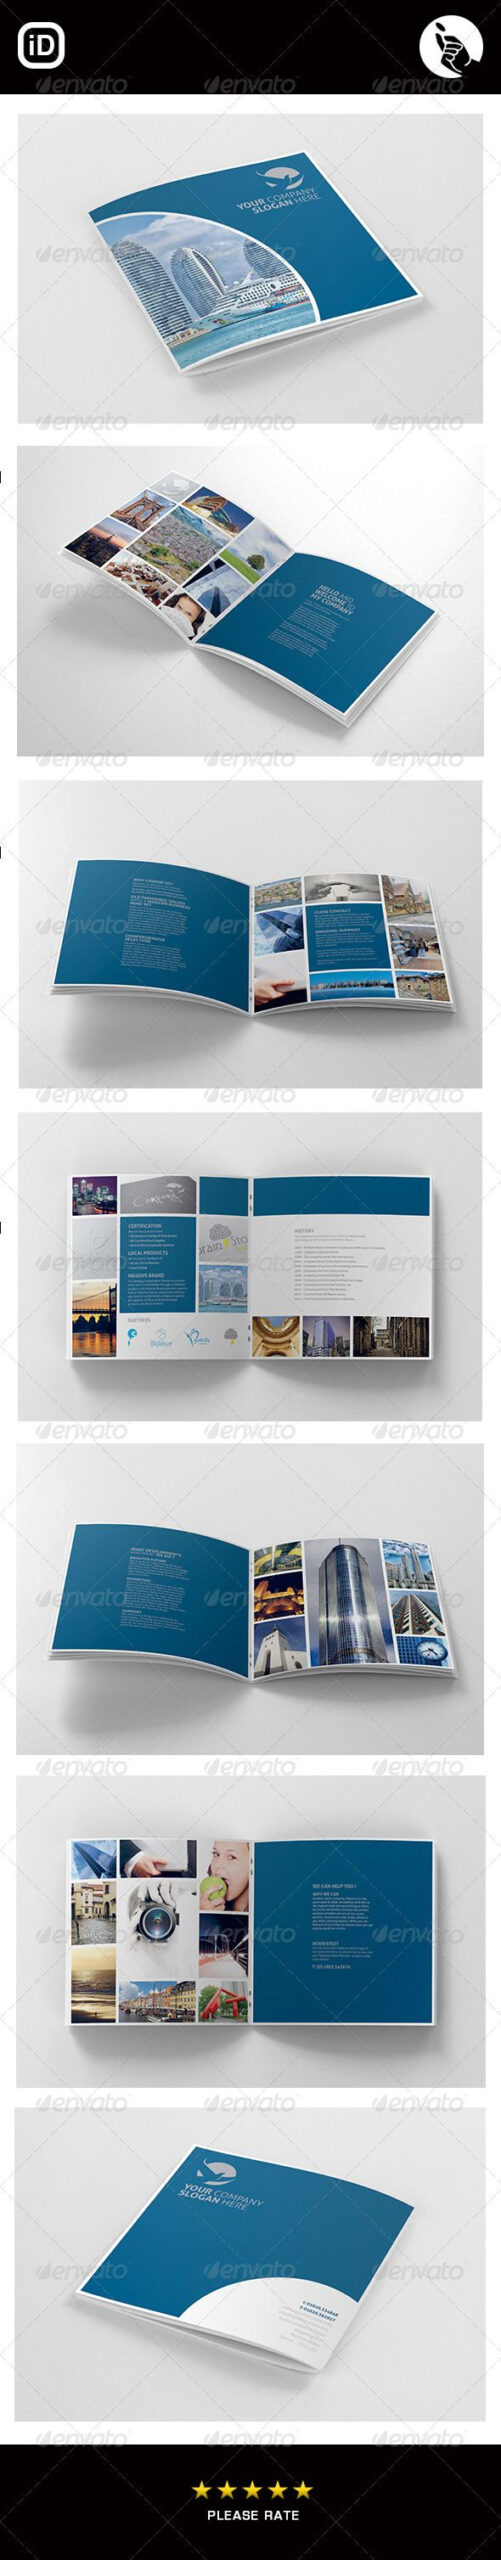 Corporate Square 12 Page Brochure - Corporate Brochures throughout 12 Page Brochure Template